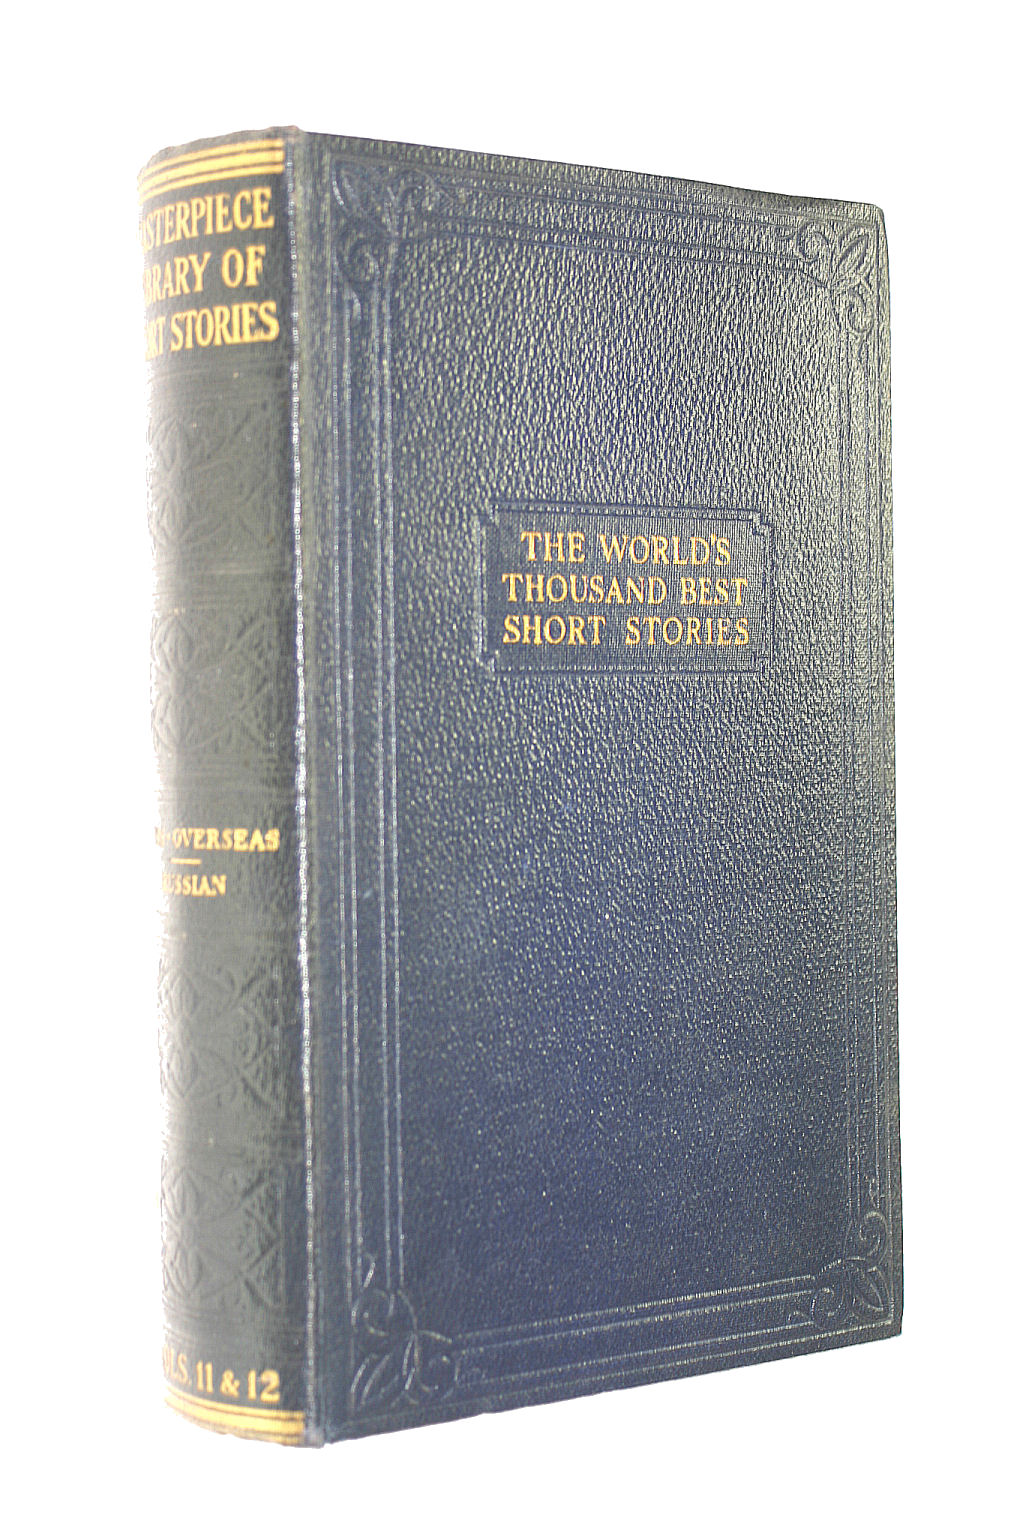 Image for The Masterpiece Library of Short Stories: The Thousand Best Complete Tales of all Times and all Countries. Vols 11 & 12: Irish, Overseas & Russian